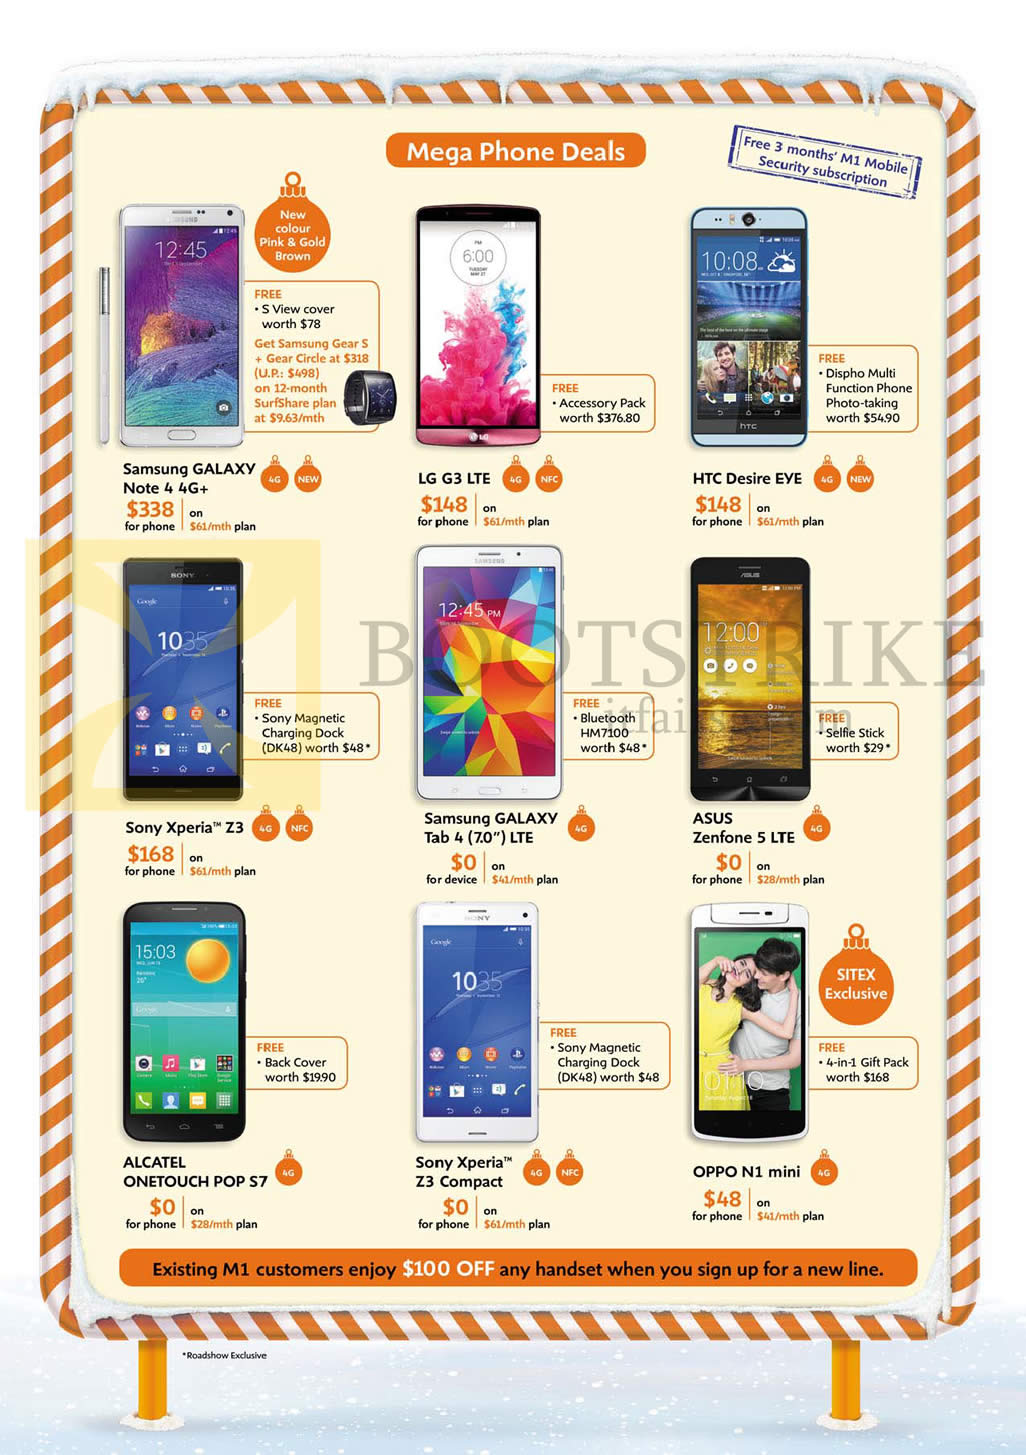 SITEX 2014 price list image brochure of M1 Mobile Samsung Galaxy Note 4, Tab 4 7.0, LG G3, HTC Desire Eye, Sony Xperia Z3, Xperia Z3 Compact, Asus Zenfone 5, Alcatel Onetouch Pop S7, Oppo N1 Mini